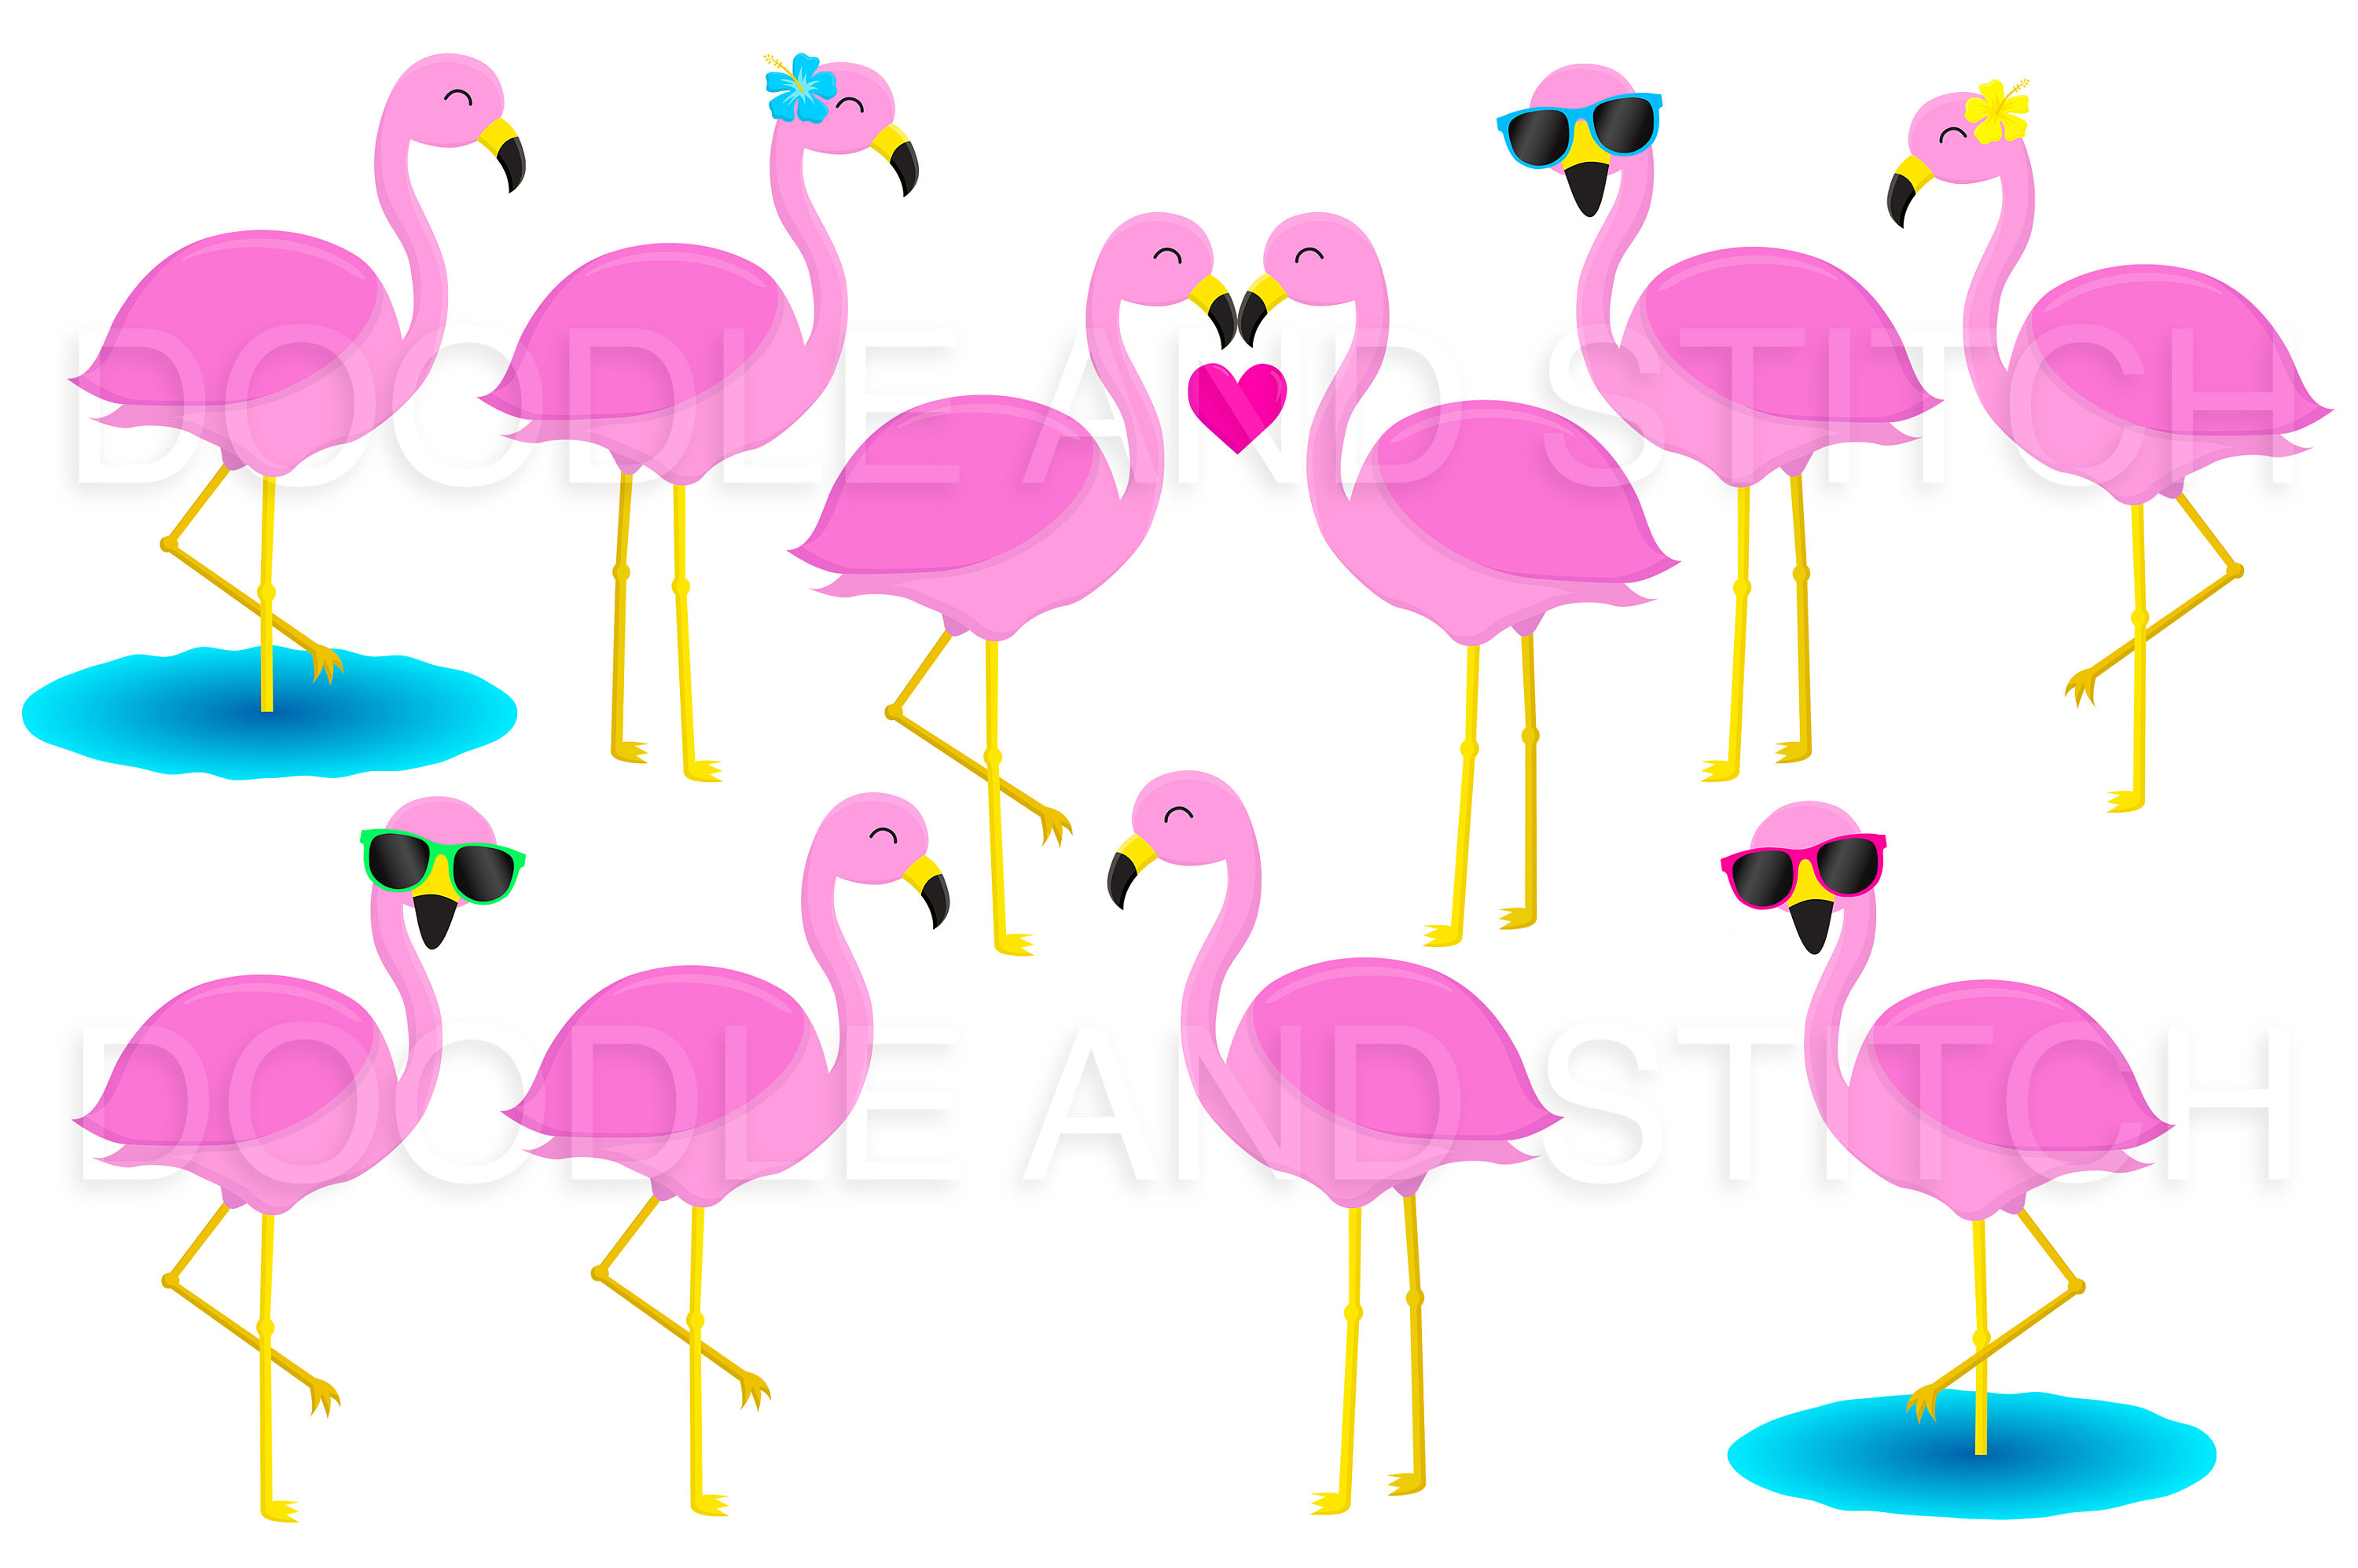 Flamingo sunglasses clipart clip art transparent stock Flamingo clipart sunglasses - 103 transparent clip arts, images and ... clip art transparent stock